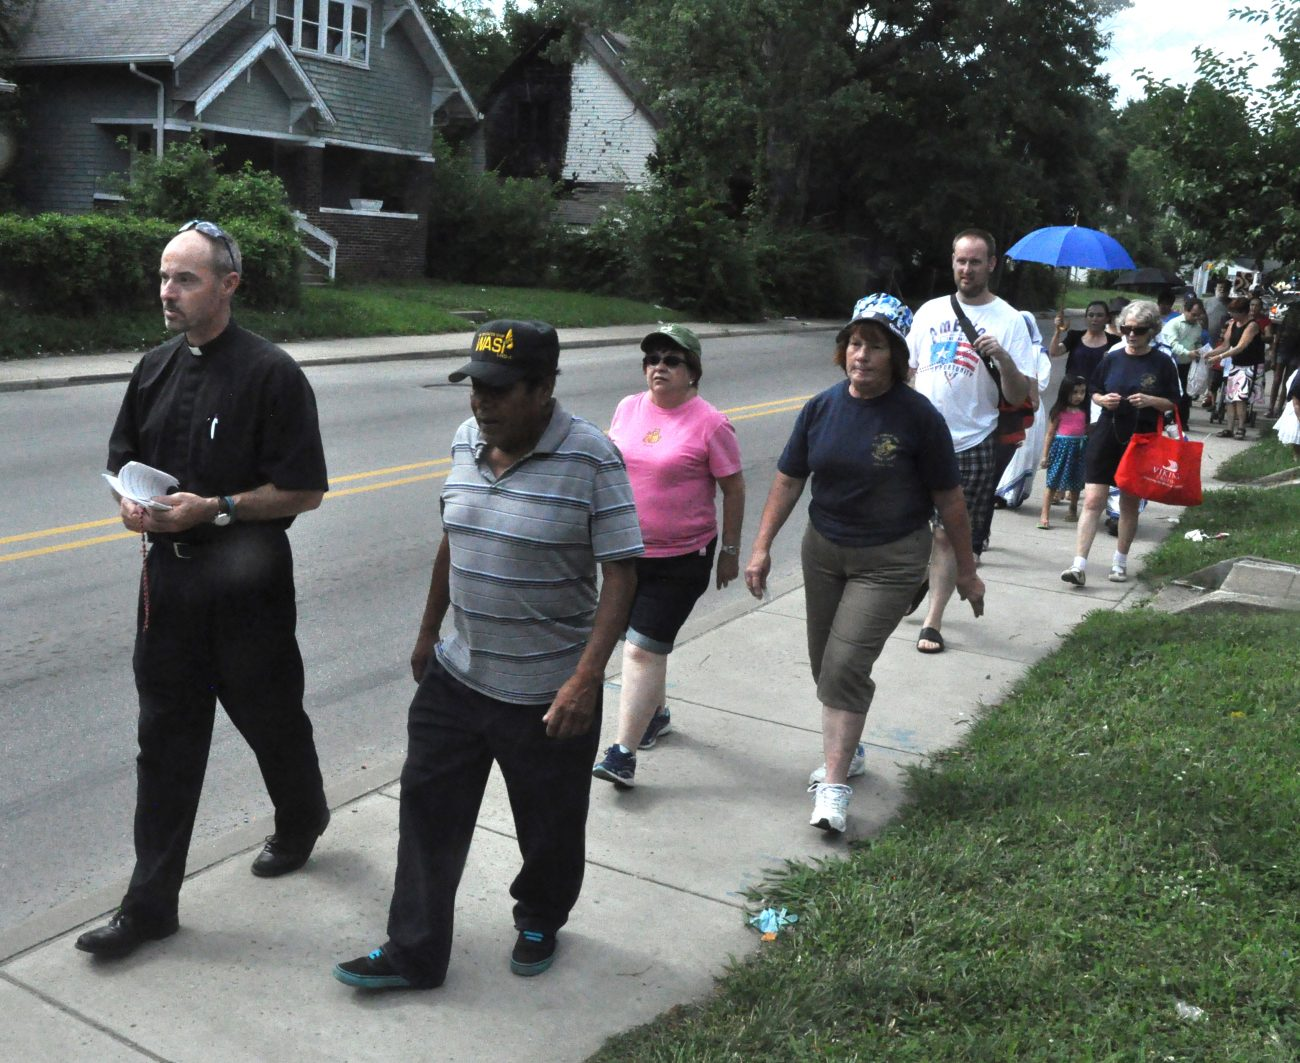 Father Christopher Wadelton, pastor of St. Philip Neri Parish in Indianapolis, leads a group in praying the rosary July 10 while walking through the church's neighborhood. The parish is sponsoring a series of nine consecutive prayer walks in response to increased drug problems and violent crimes in its neighborhood. (CNS photo/Sean Gallagher, The Criterion)